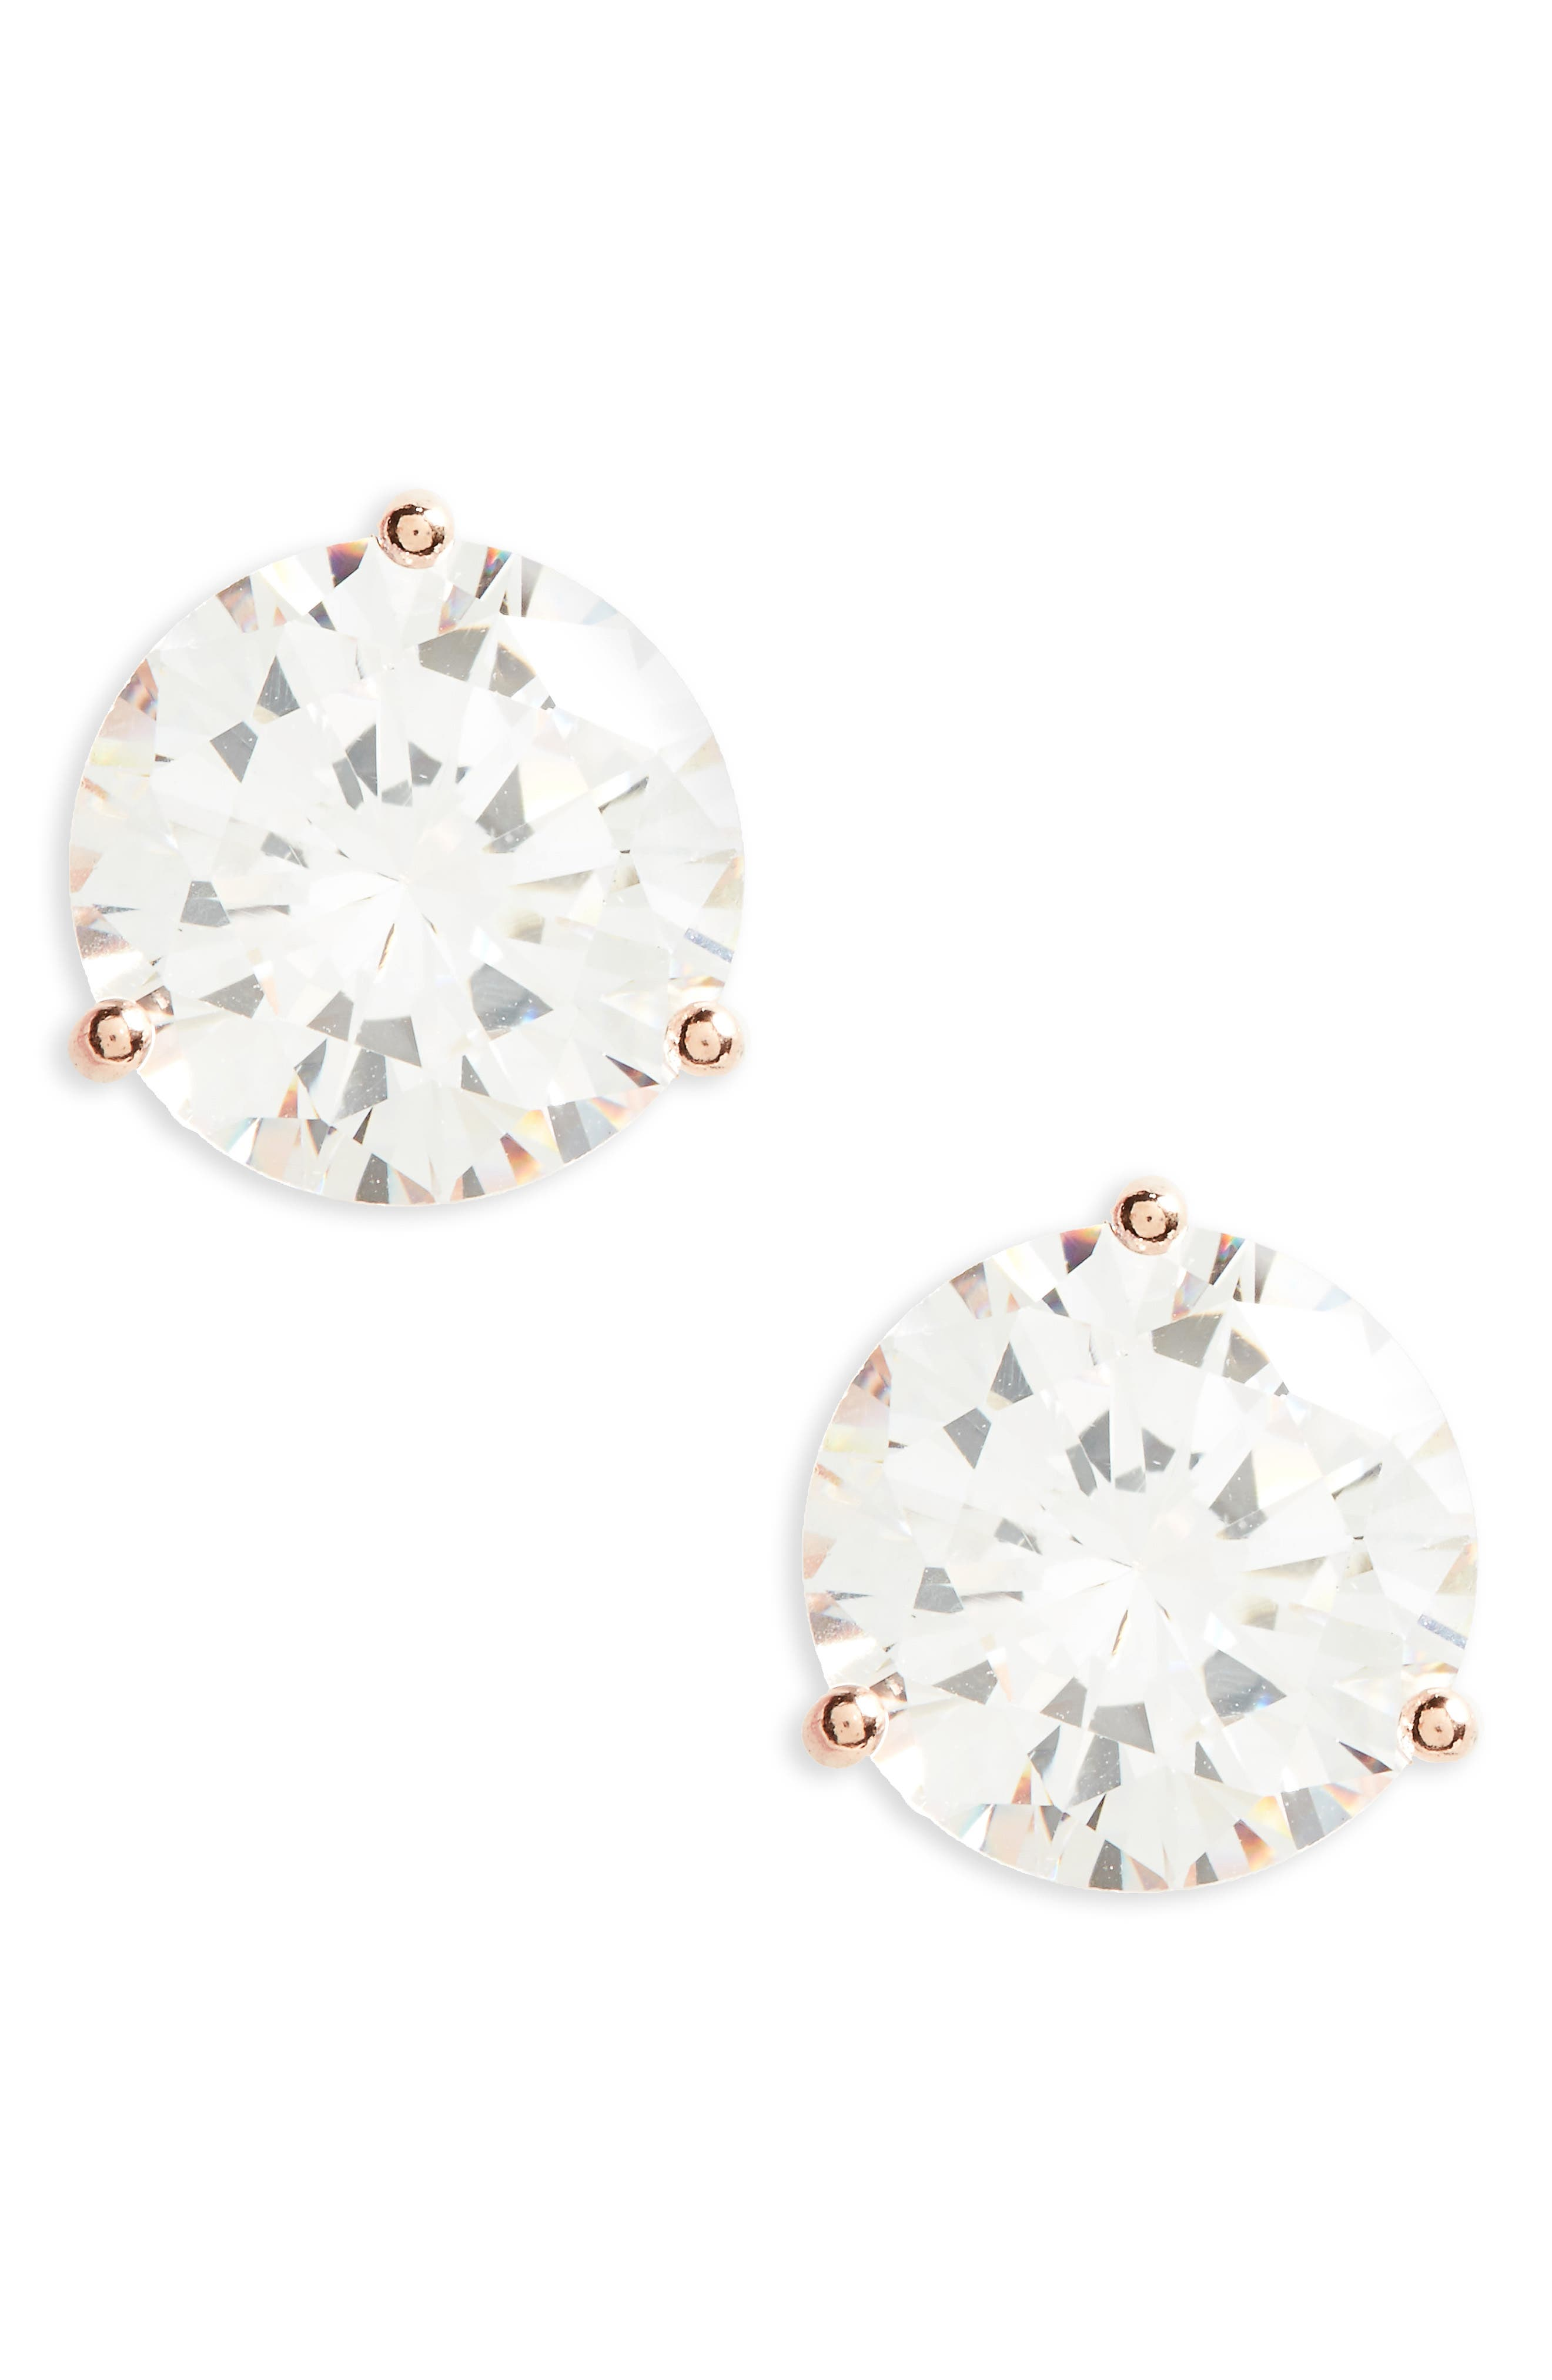 NORDSTROM 8.0ct tw Cubic Zirconia Earrings, Main, color, CLEAR- ROSE GOLD